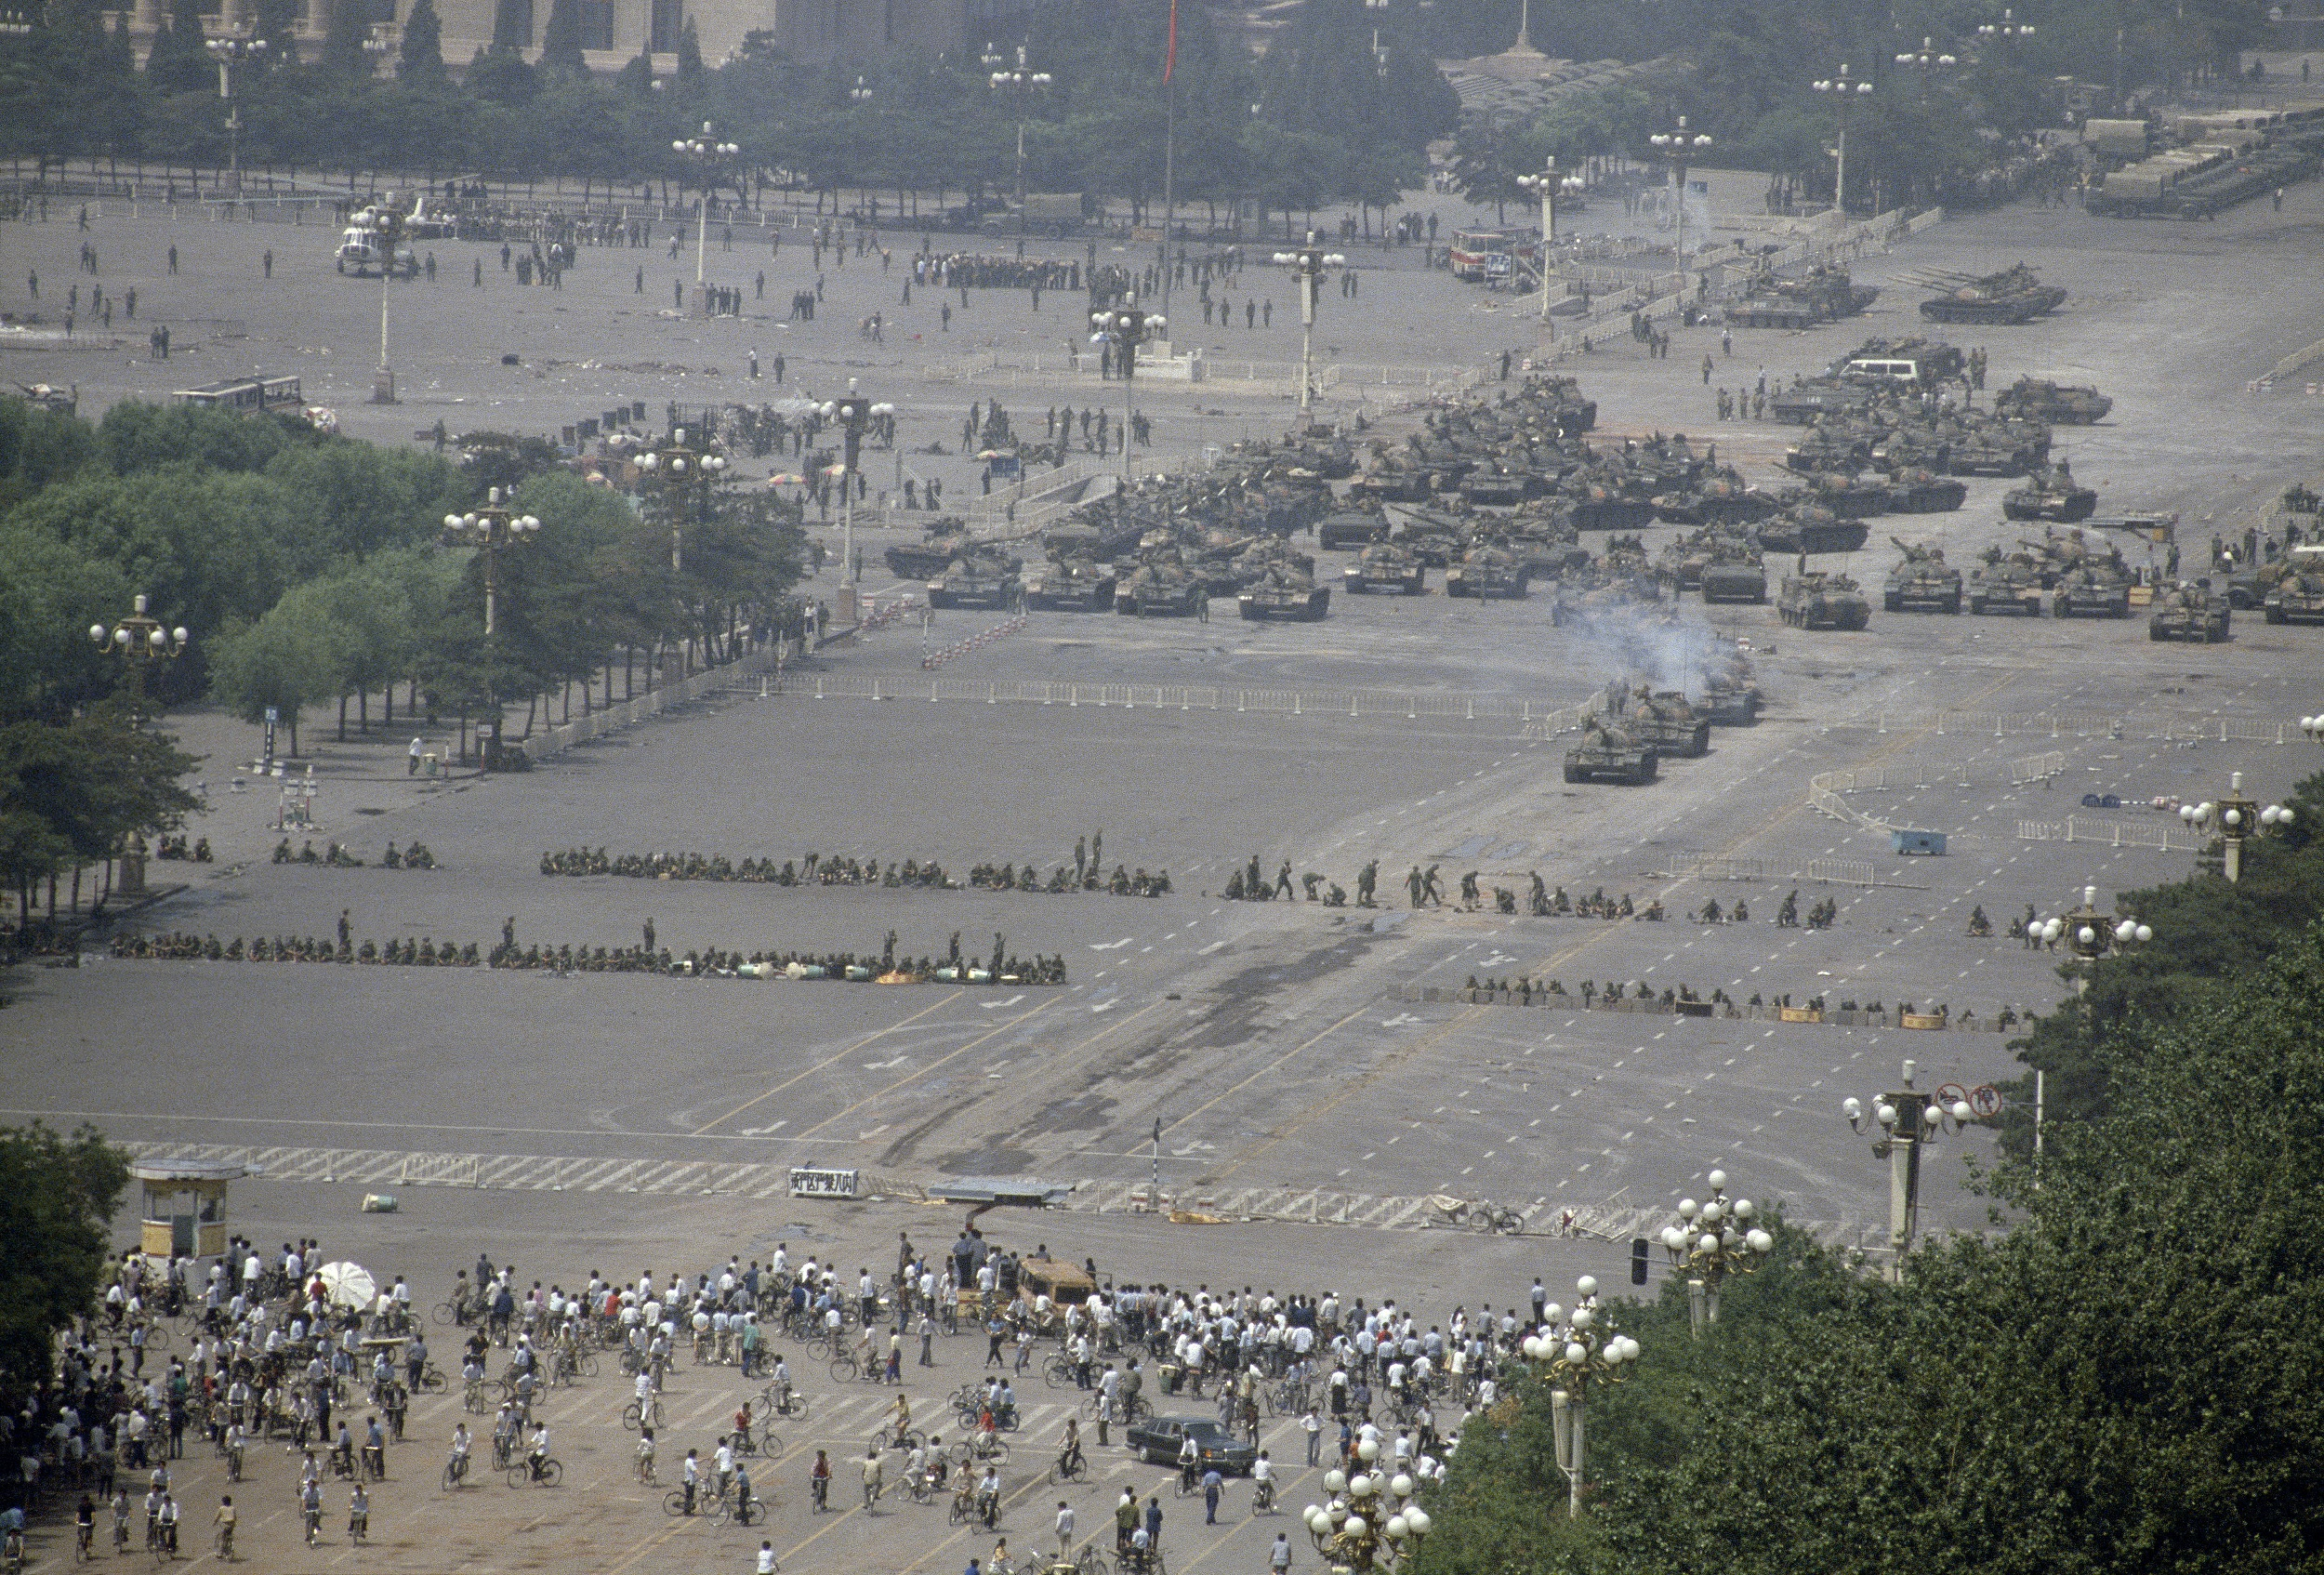 CHINA. Beijing. Tiananmen Square protests. 1989.